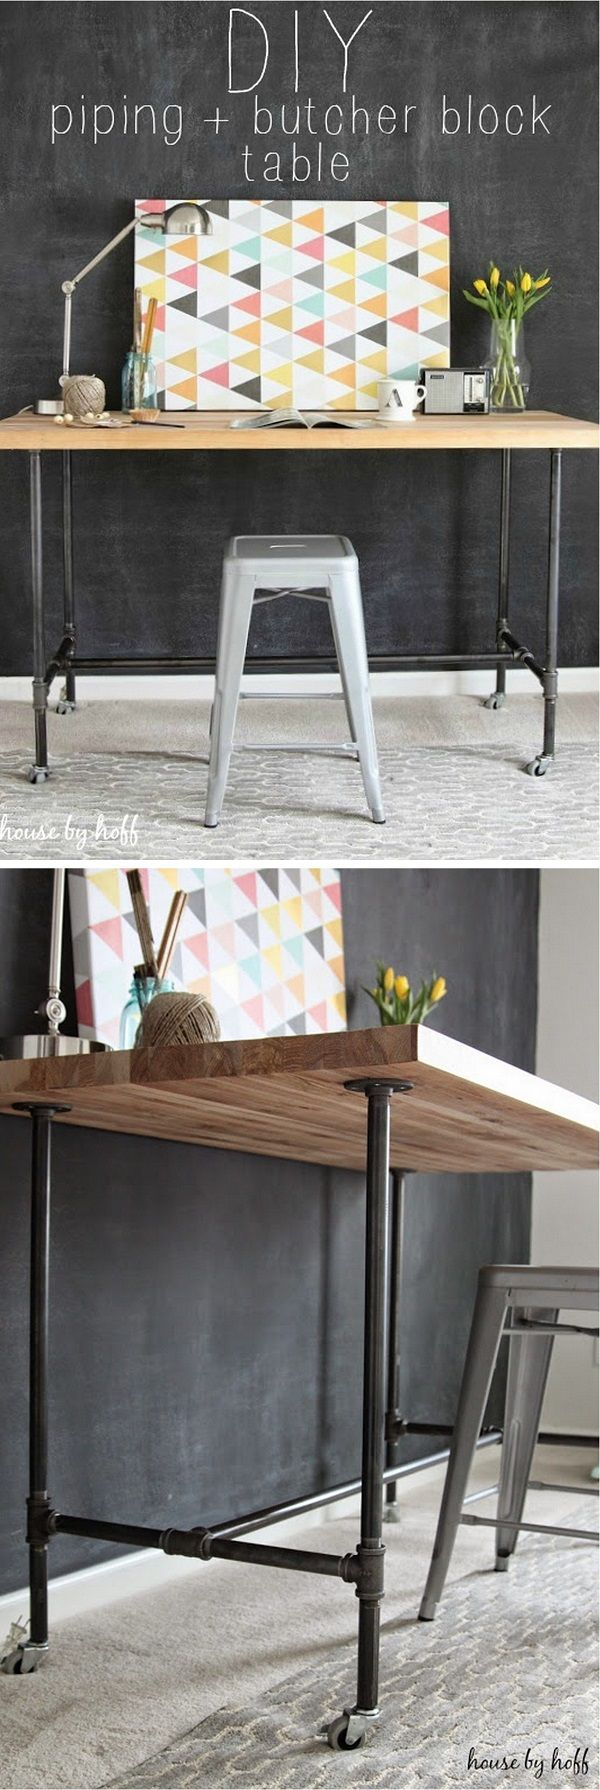 Check out this easy idea on how to build a #DIY #wood and piping table for living room #homedecor #budget #project @istandarddesign